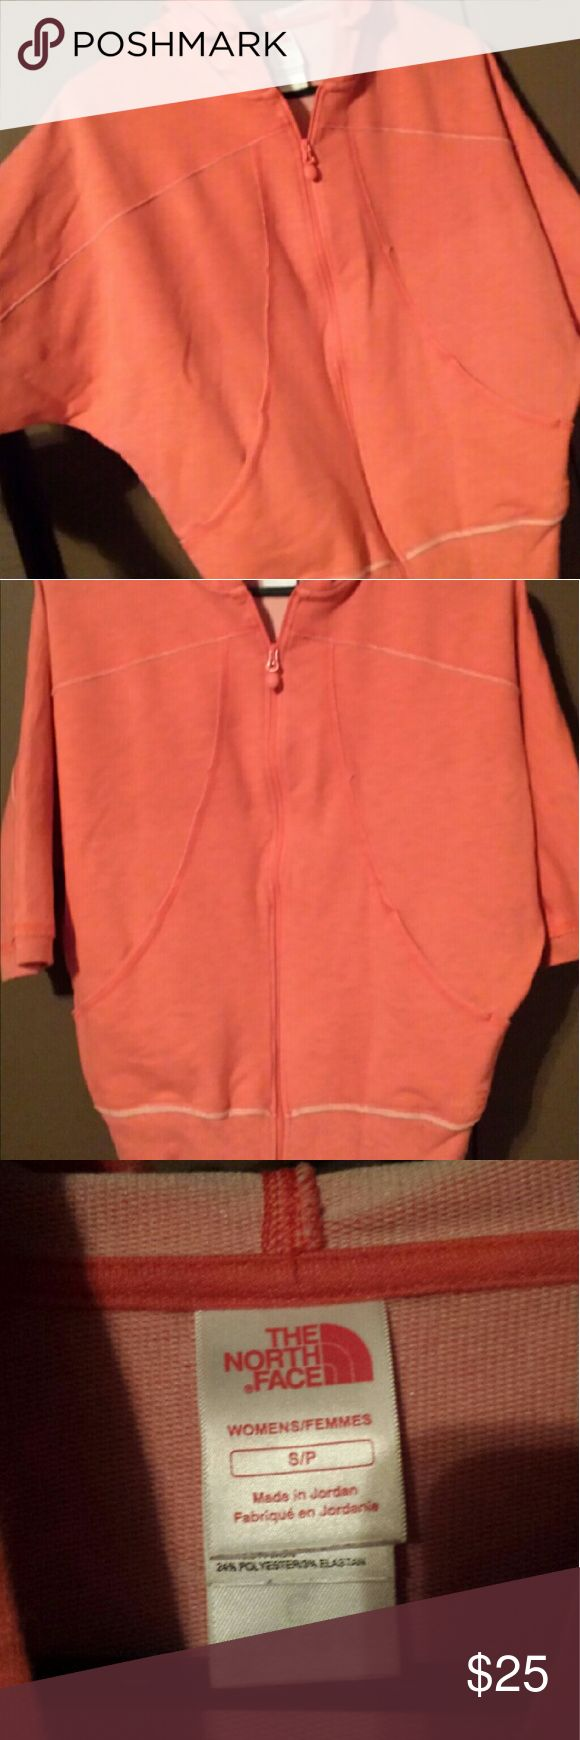 North Face sz. Small zip up hoodie with 3/4 sleeve Like new women's north face 3/4 sleeve full zip hoodie. Loose fitting. Sits above waist. Orange/peach color North Face Tops Sweatshirts & Hoodies